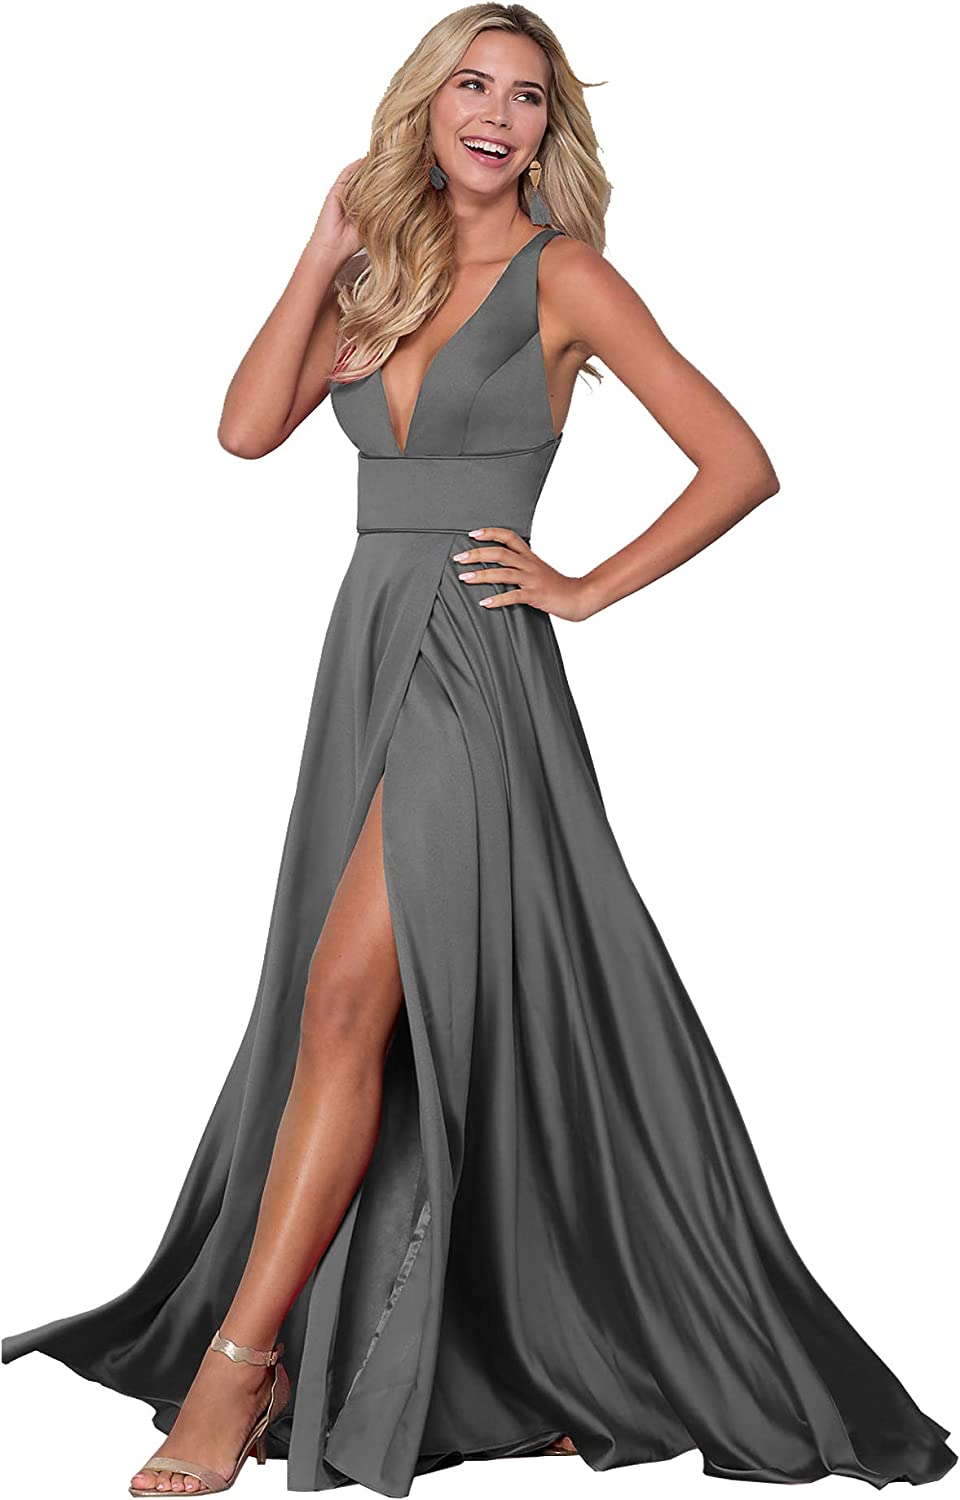 Beauty Bridal V Neck Split Prom Evening Dress for Women ALine Long Satin Formal Party Gown Z22